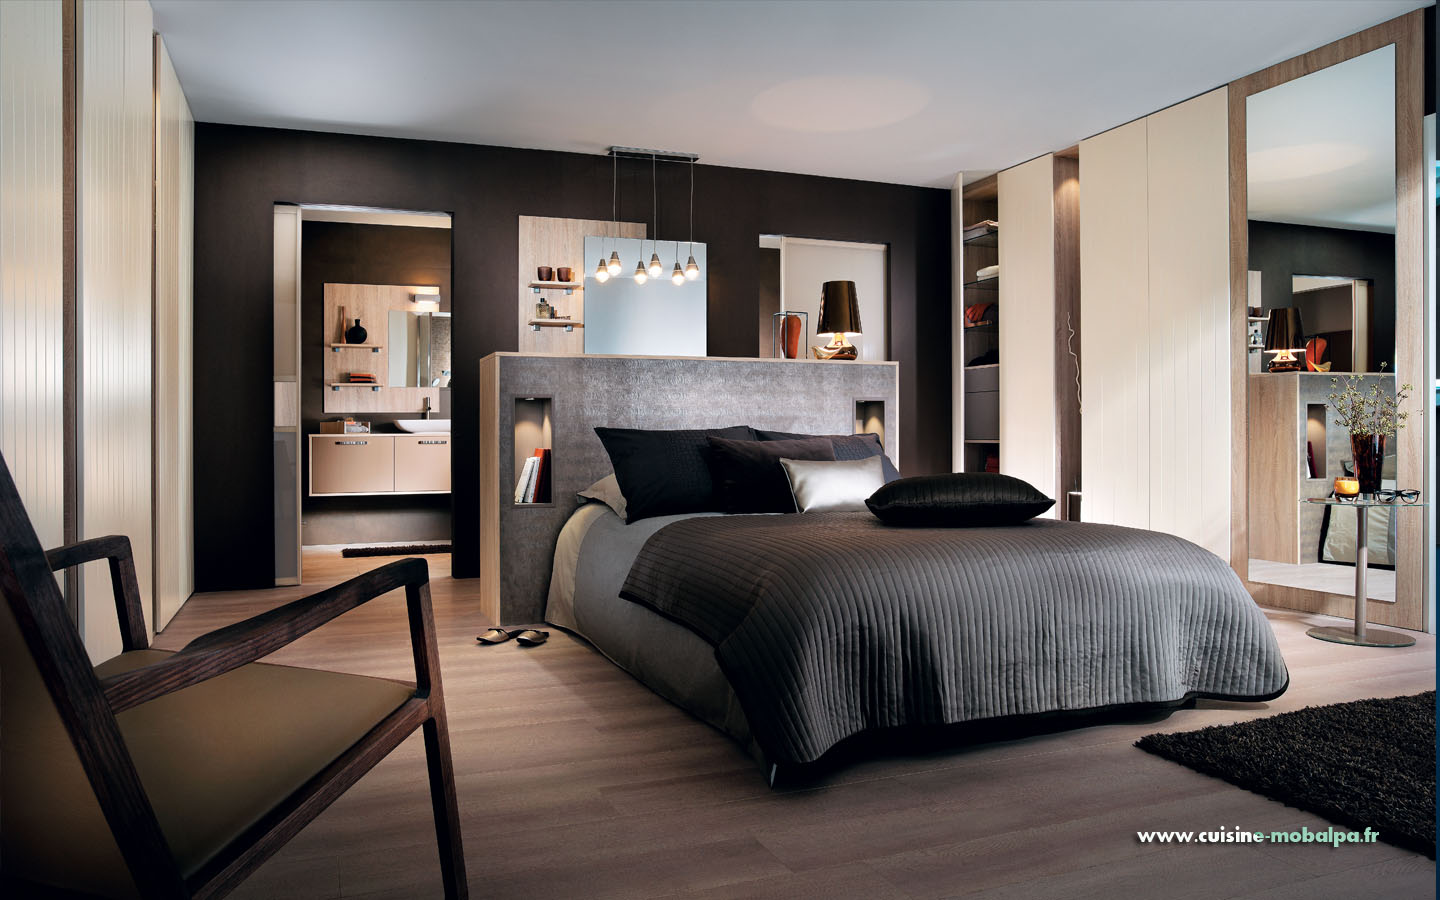 suite parentale confort fanga cuisiniste salle de bains. Black Bedroom Furniture Sets. Home Design Ideas